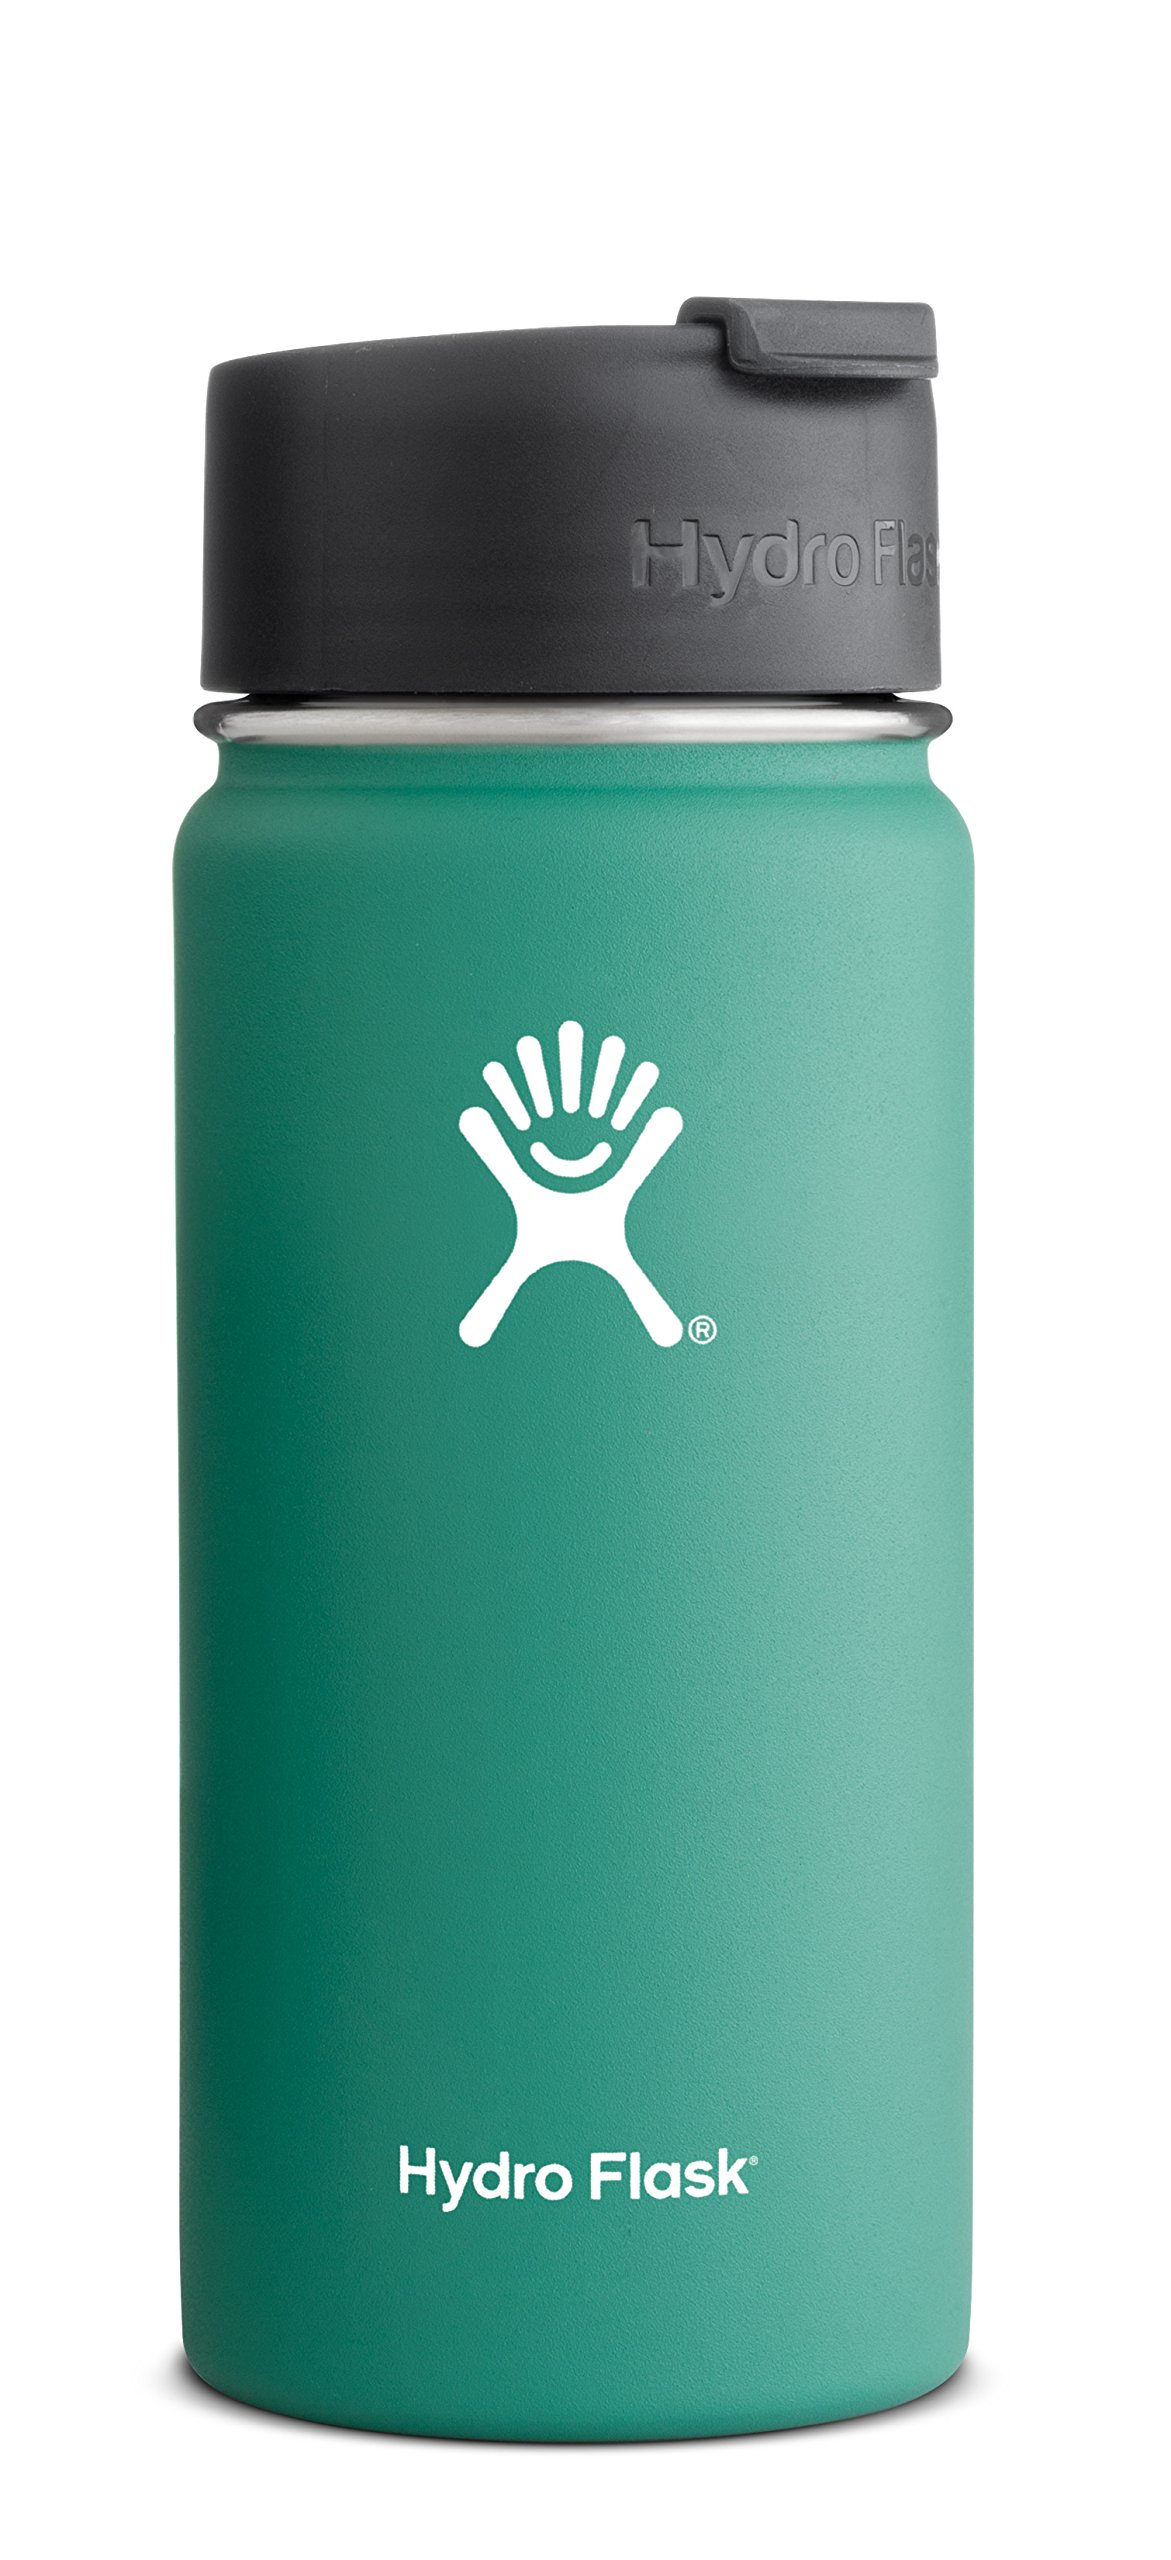 Hydro Flask Vacuum Insulated Stainless Steel Water Bottle Wide Mouth W/Hydro .. 16